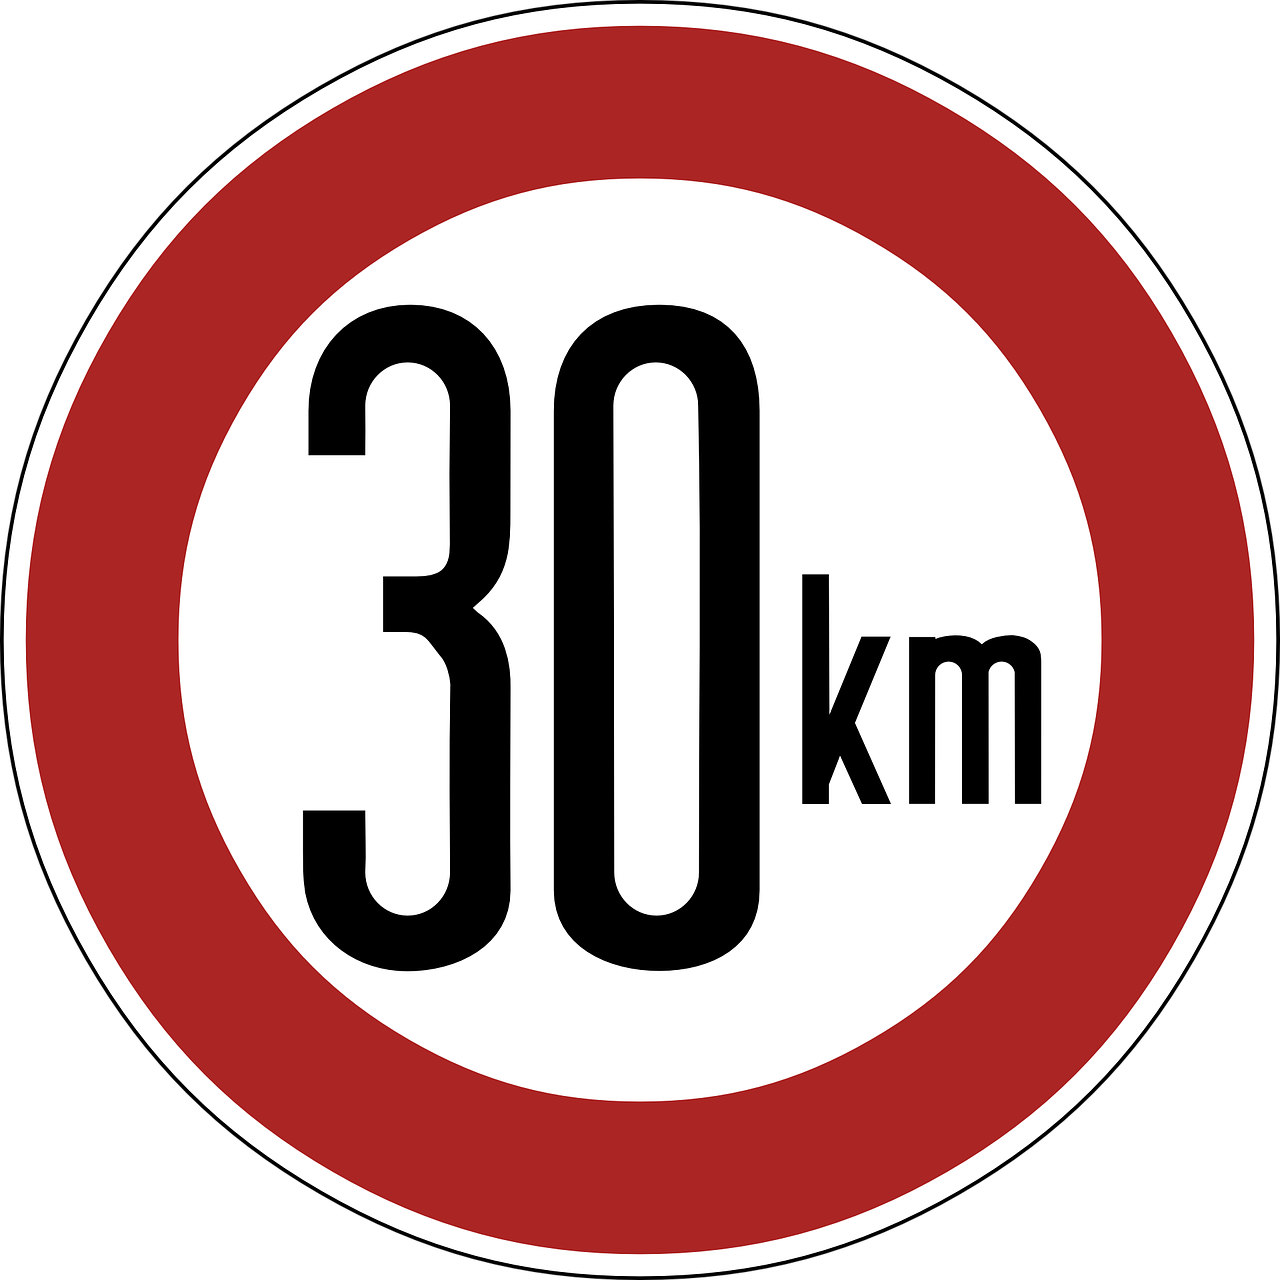 speed limit sign 30 km free photo